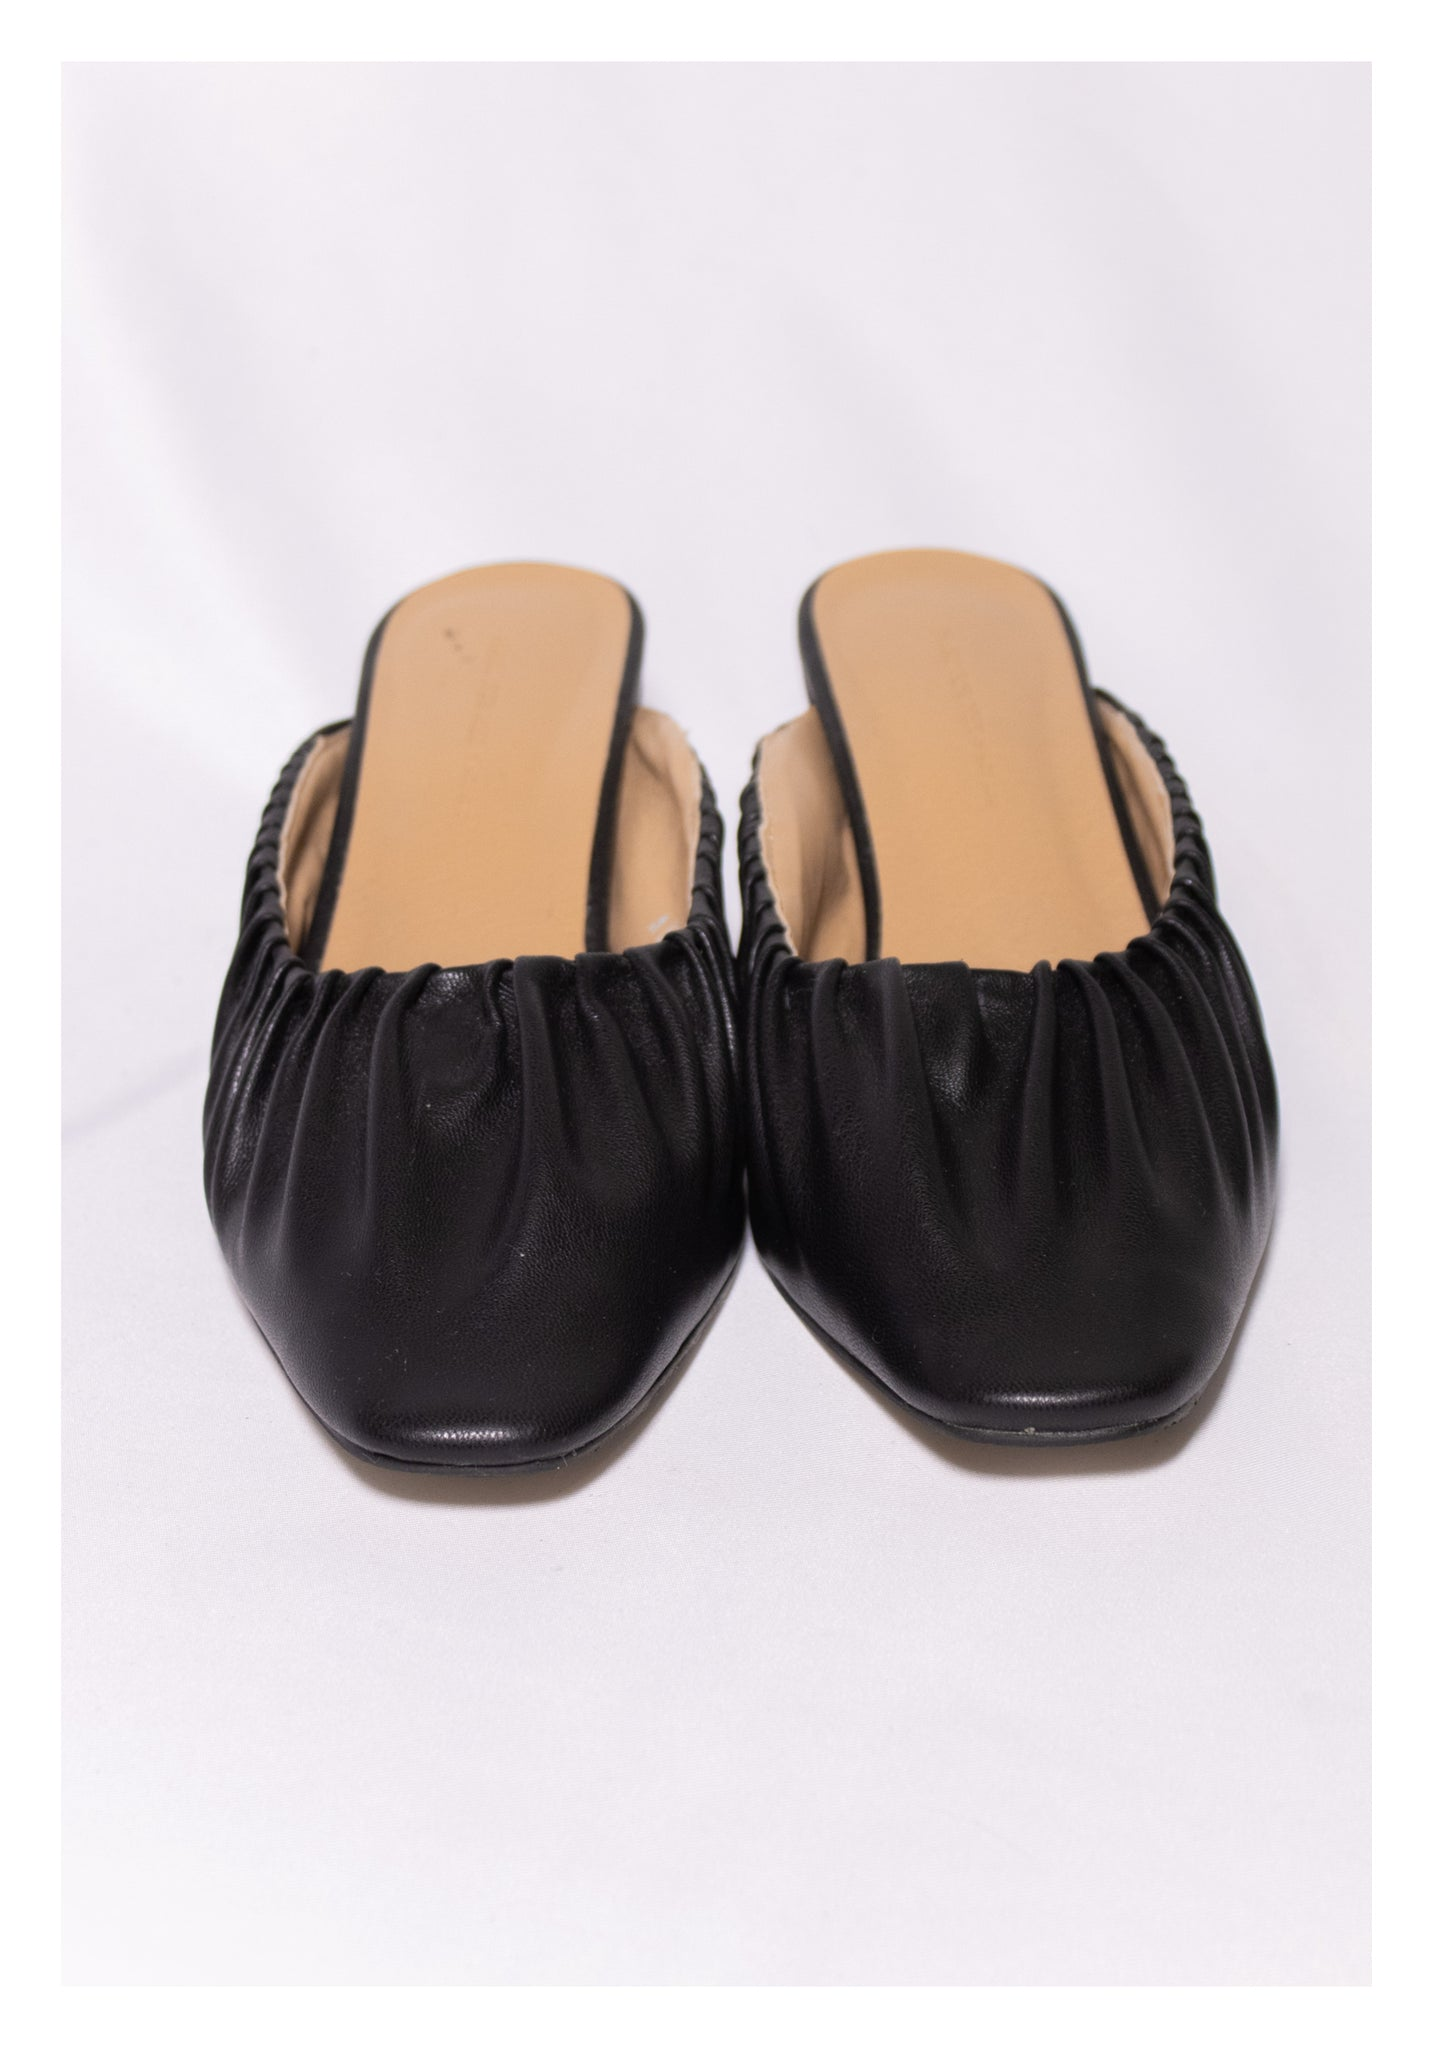 Sample Shoes - Anais Gathered Edge Mules Black